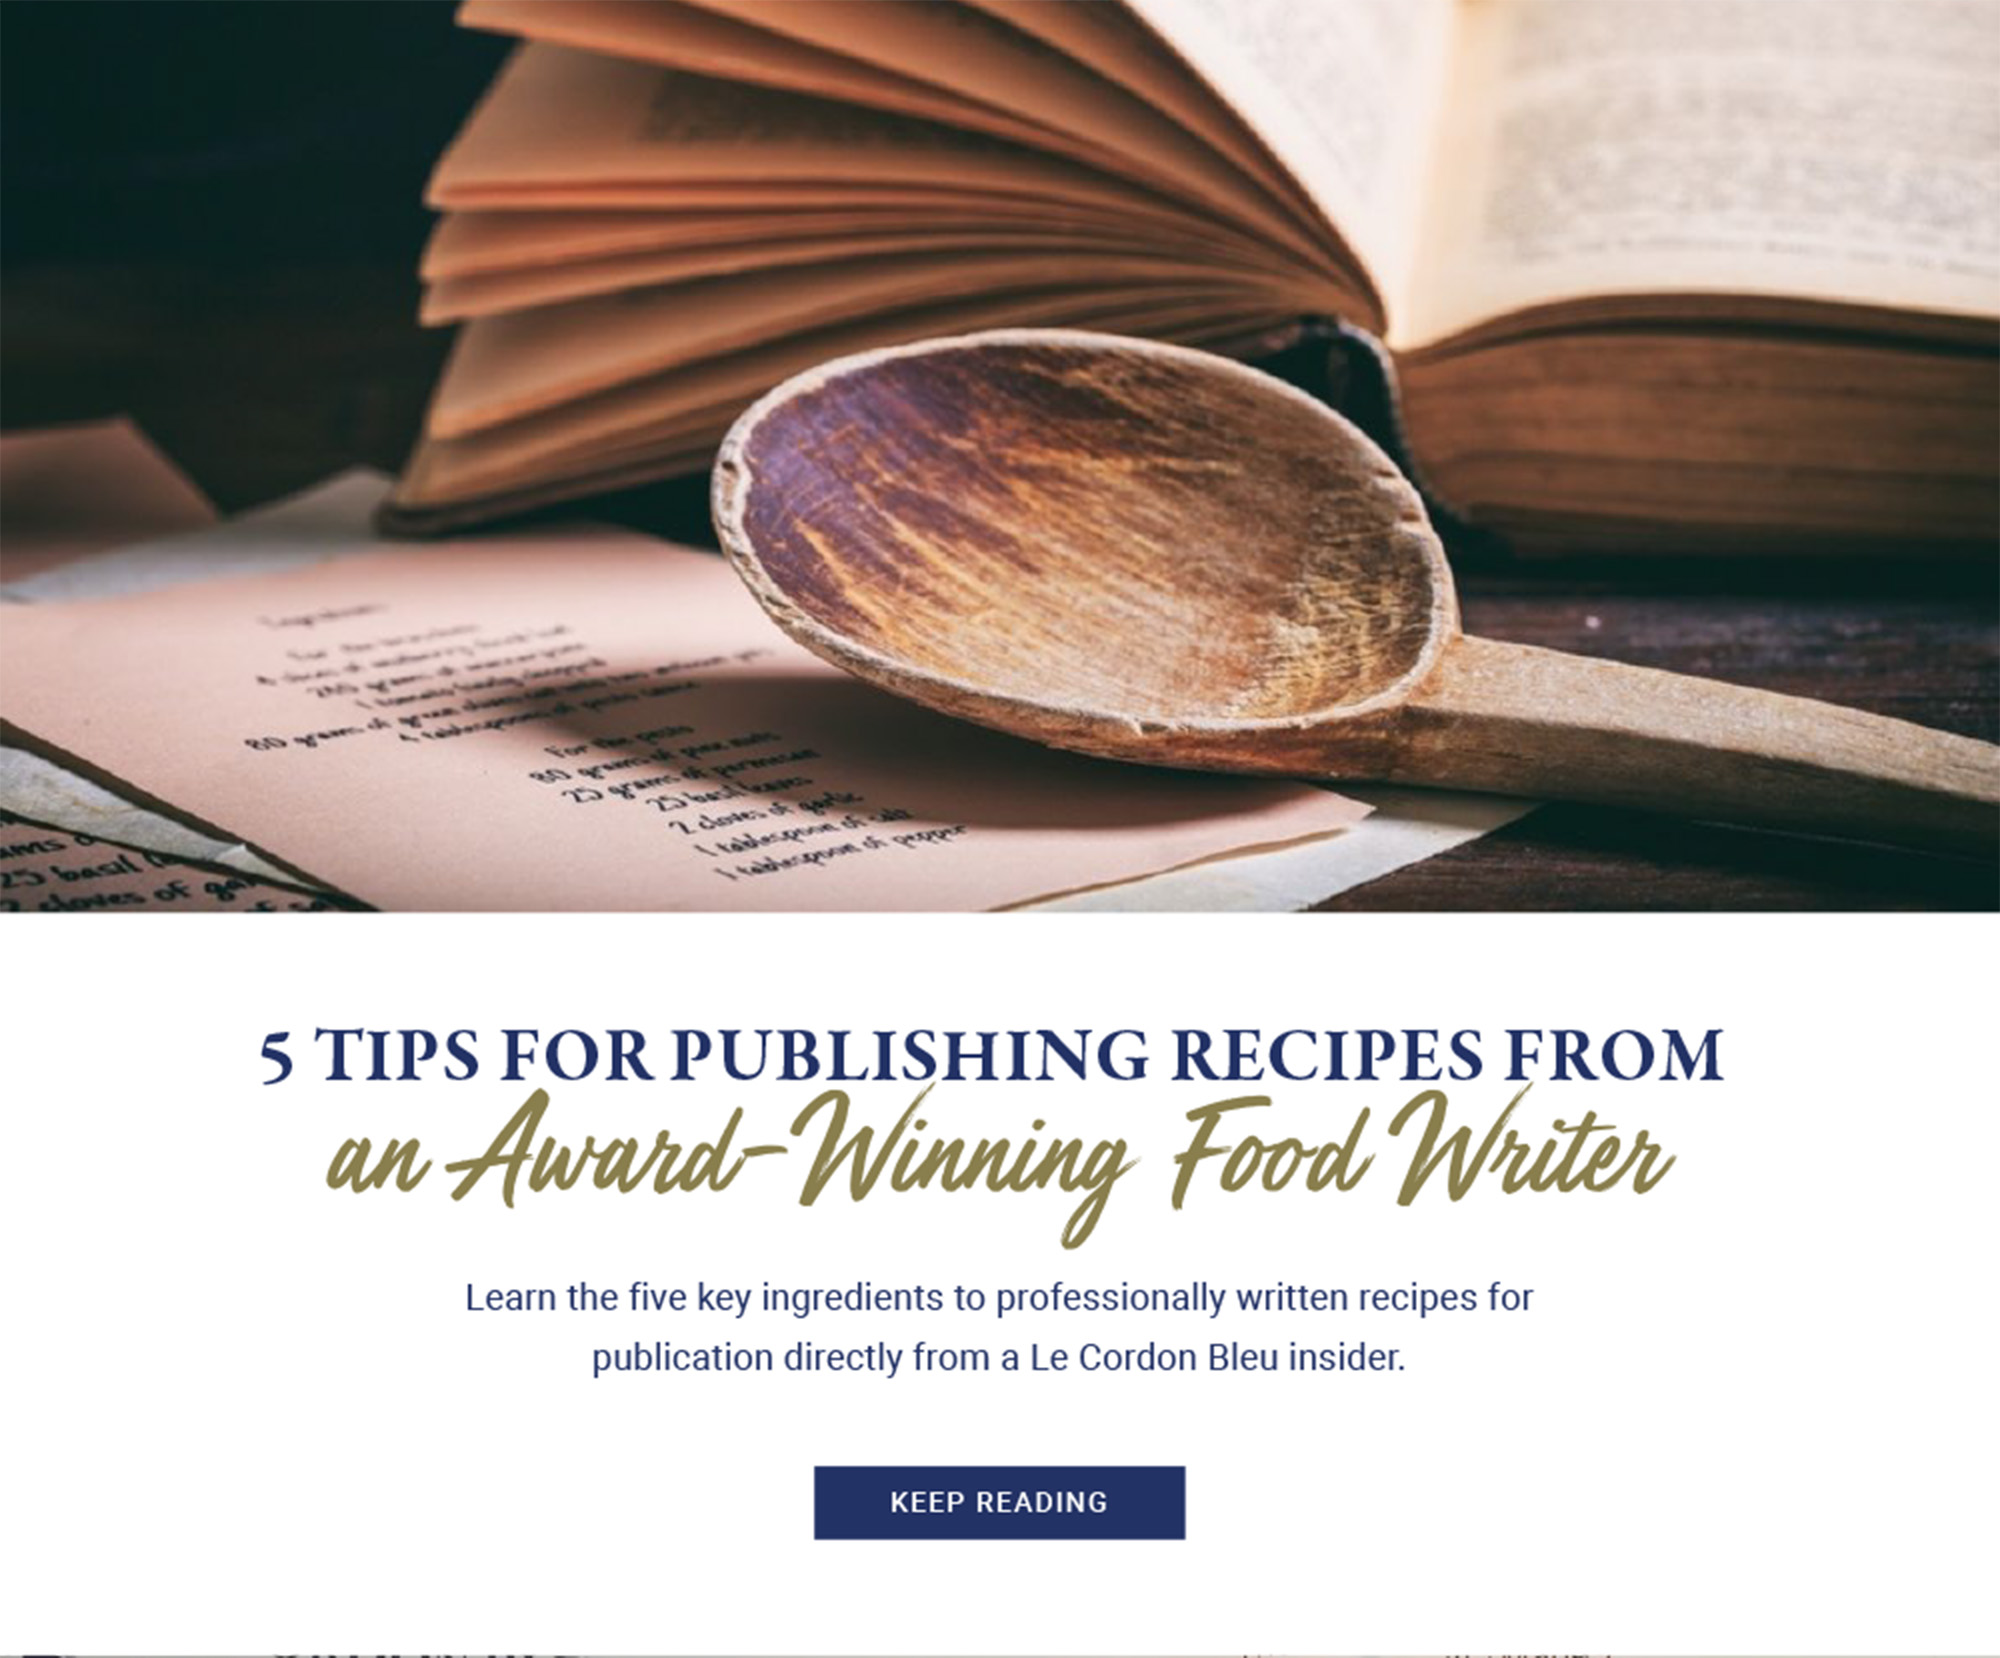 5 TIPS FOR PUBLISHING RECIPES FROM